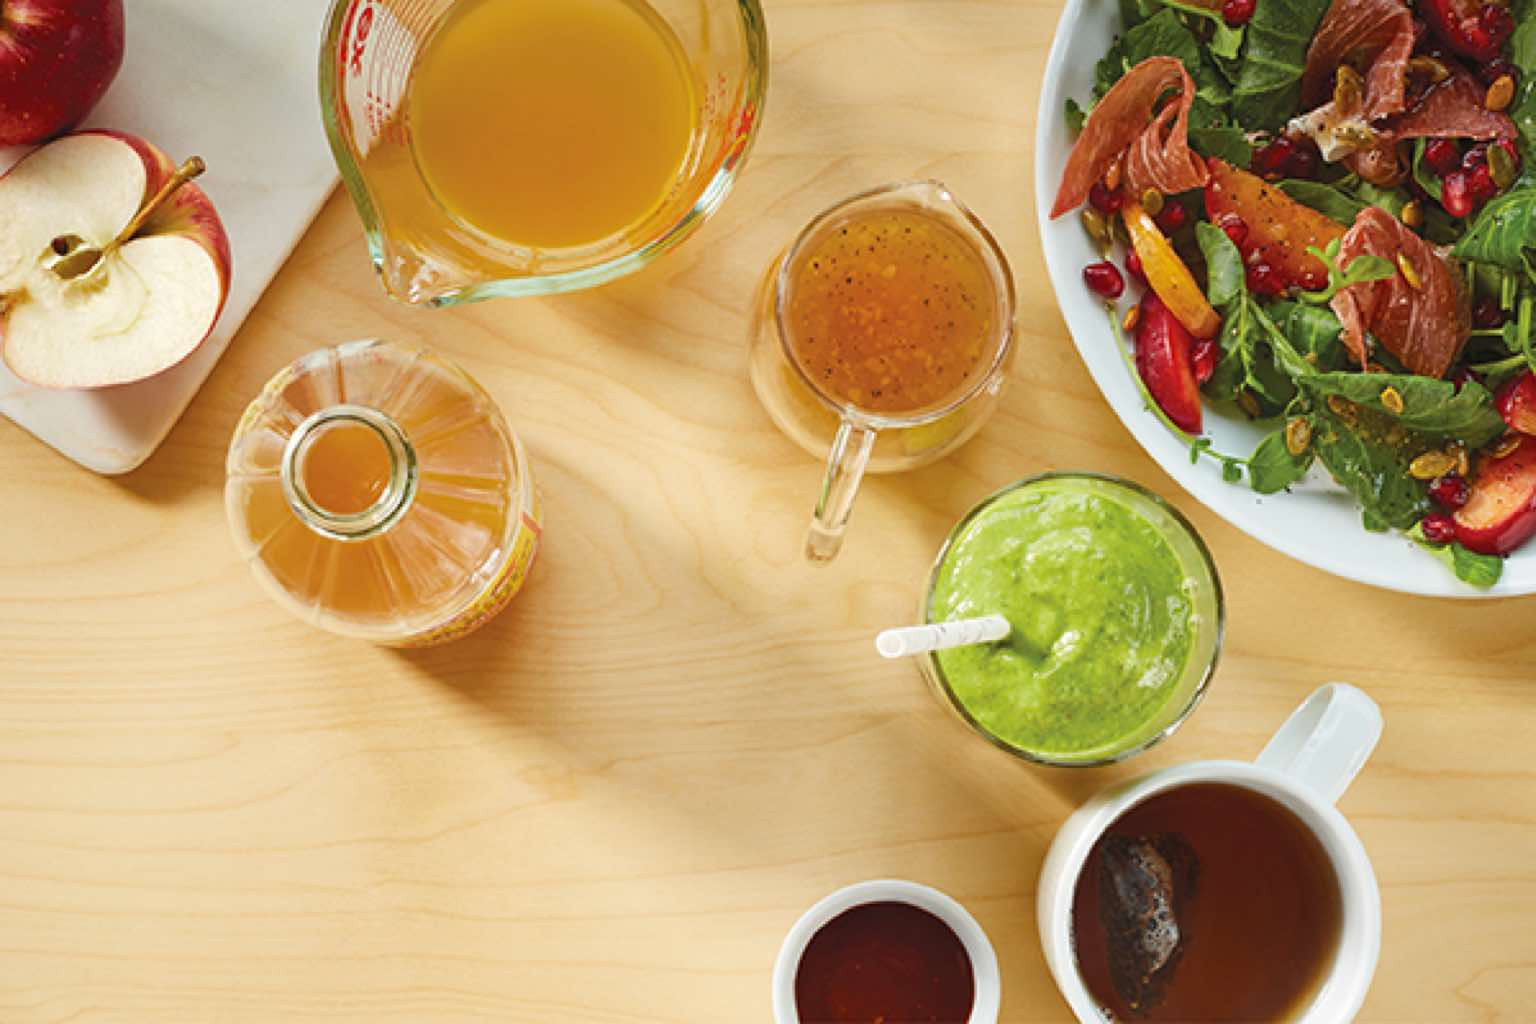 Cups of apple-cider vinegar and green smoothie next to a bowl of salad